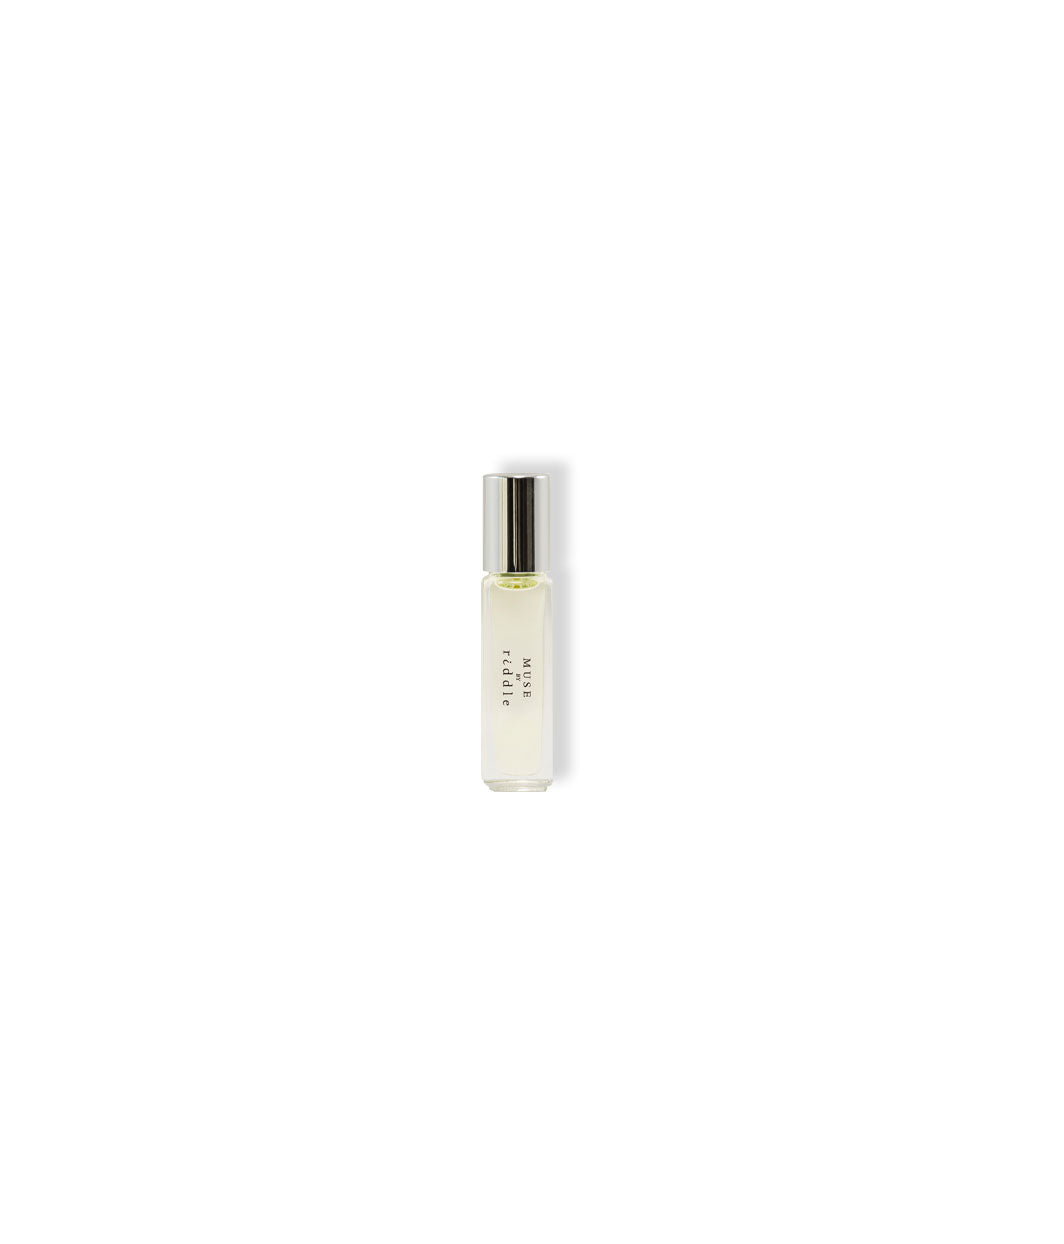 Muse Perfume 8ml - LEMON LAINE - Fragrance - Riddle